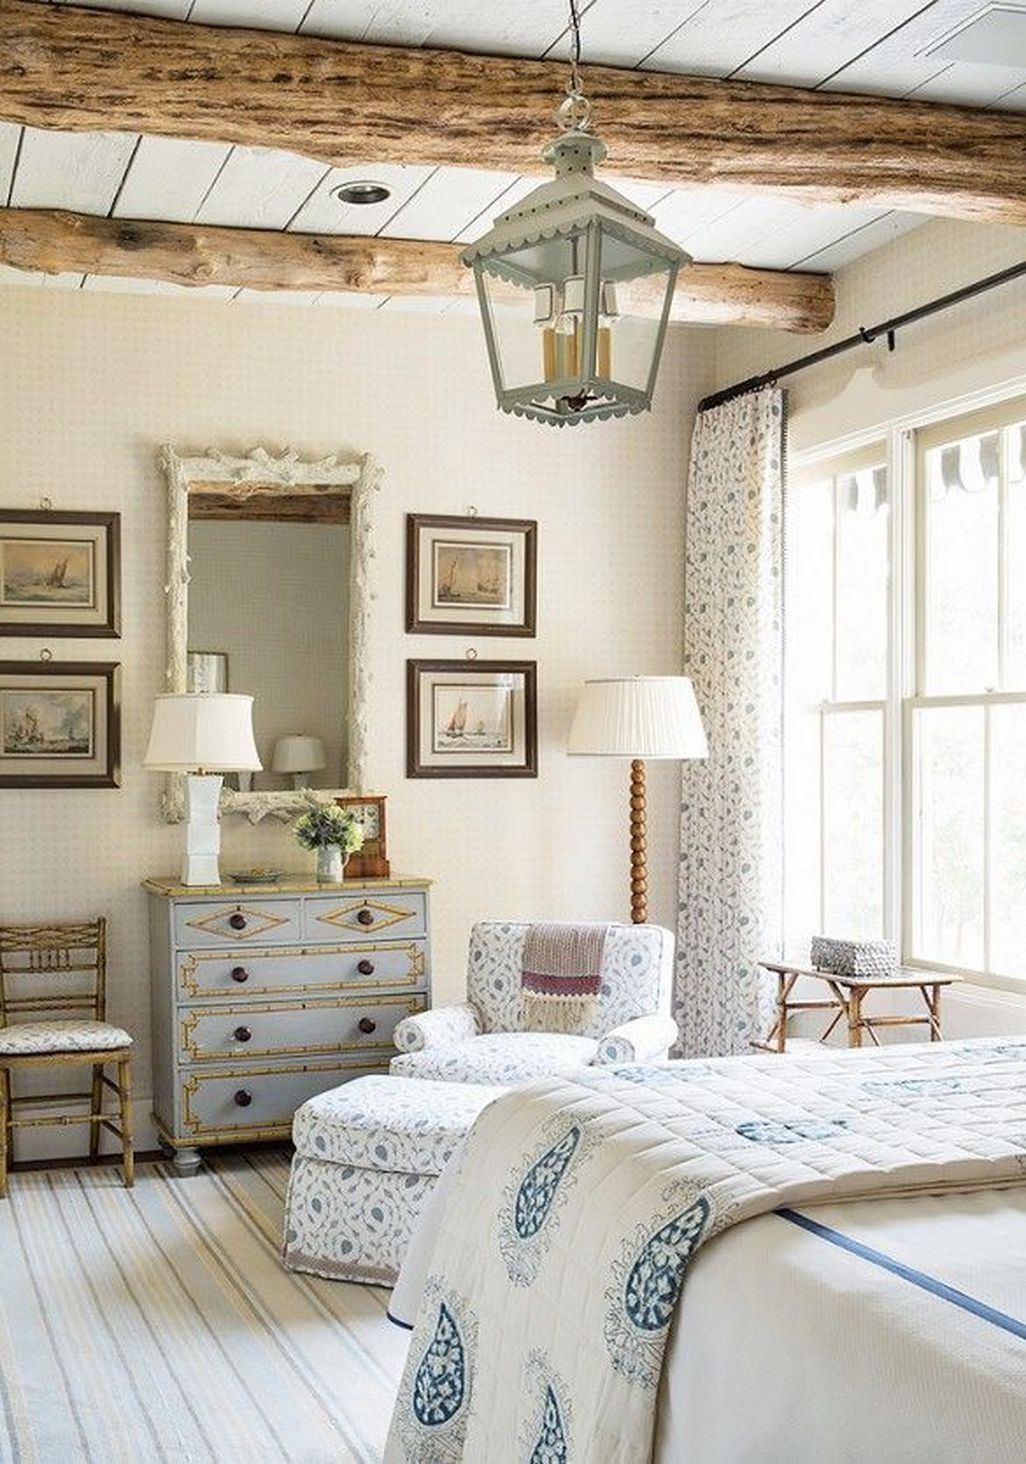 Awesome Rustic Farmhouse Bedroom Decoration Ideas 31